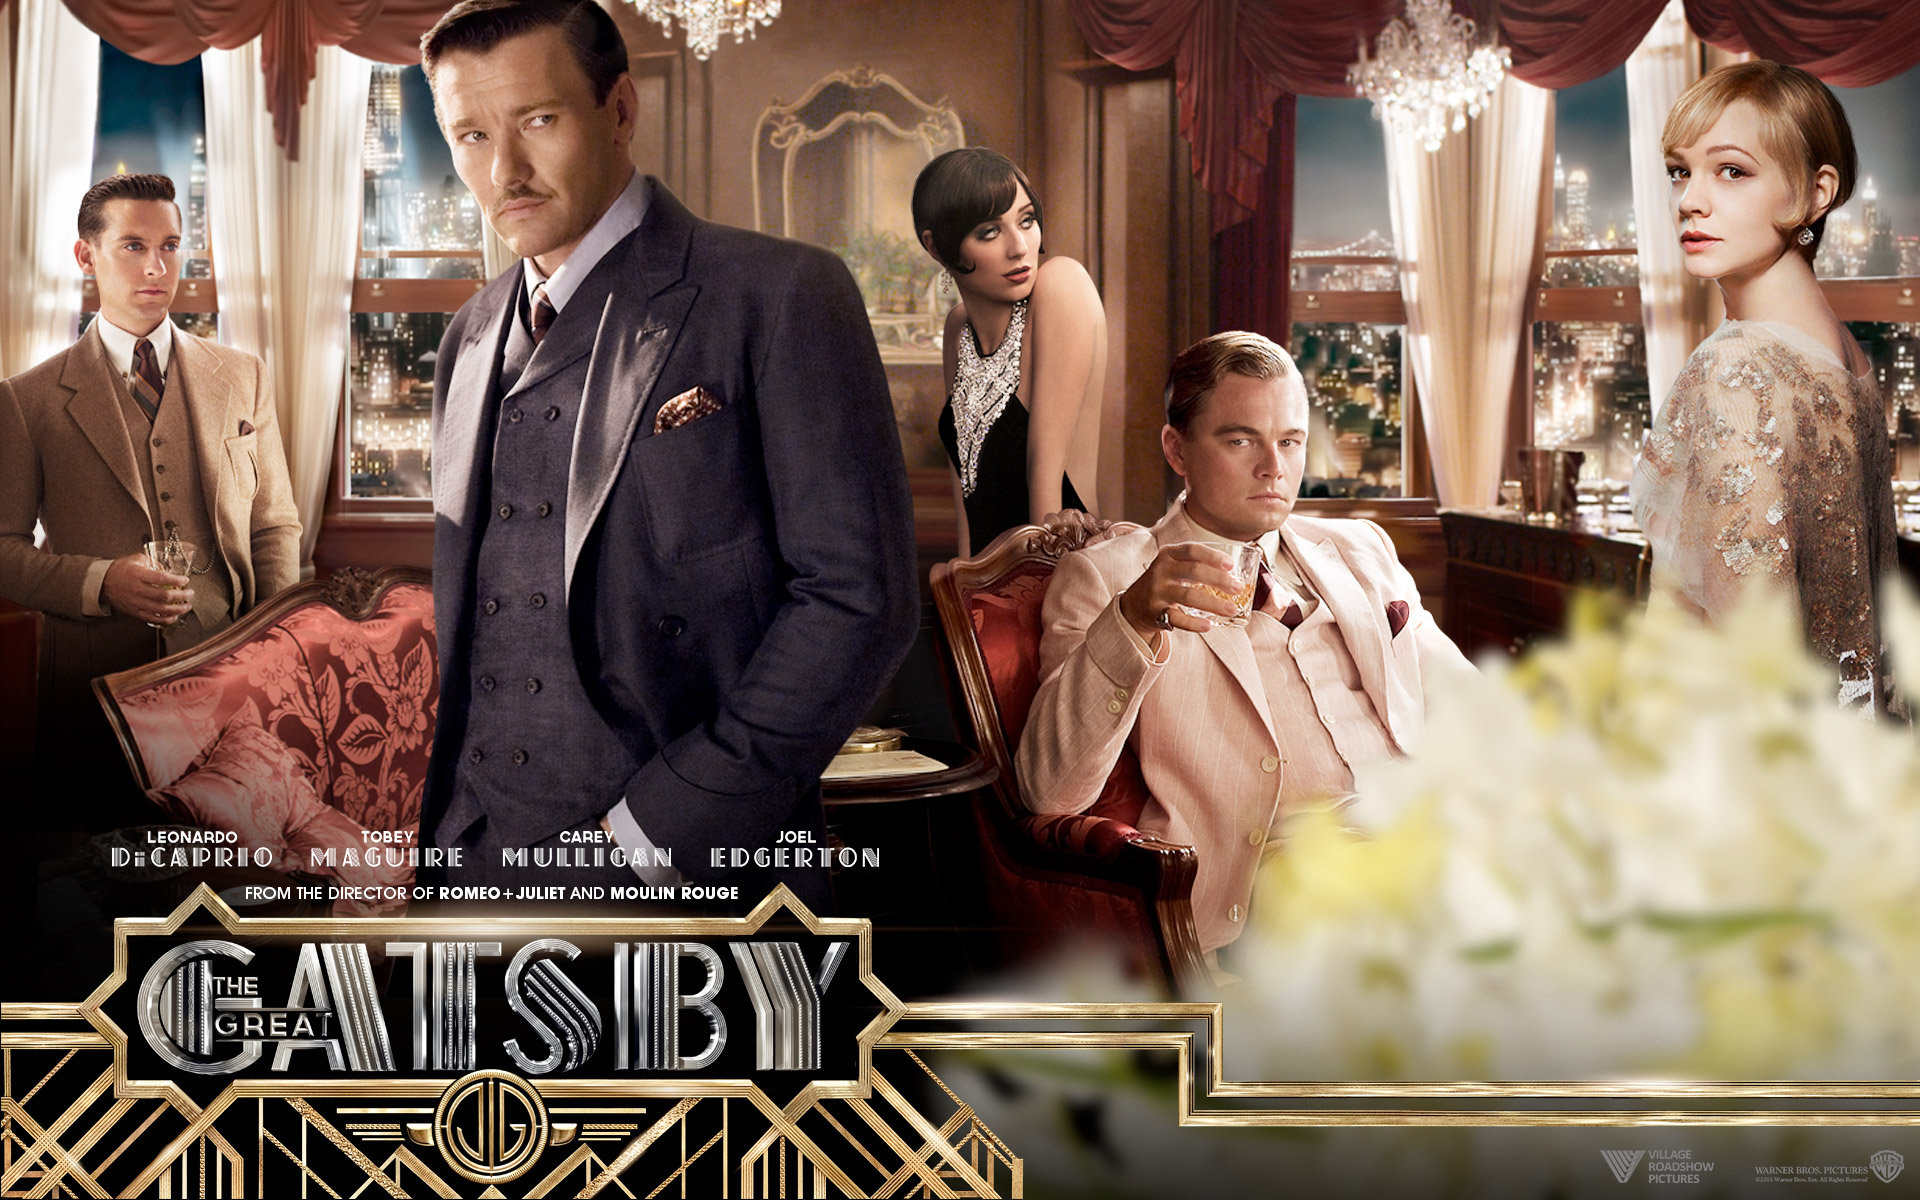 an analysis of the imagery used in the great gatsby